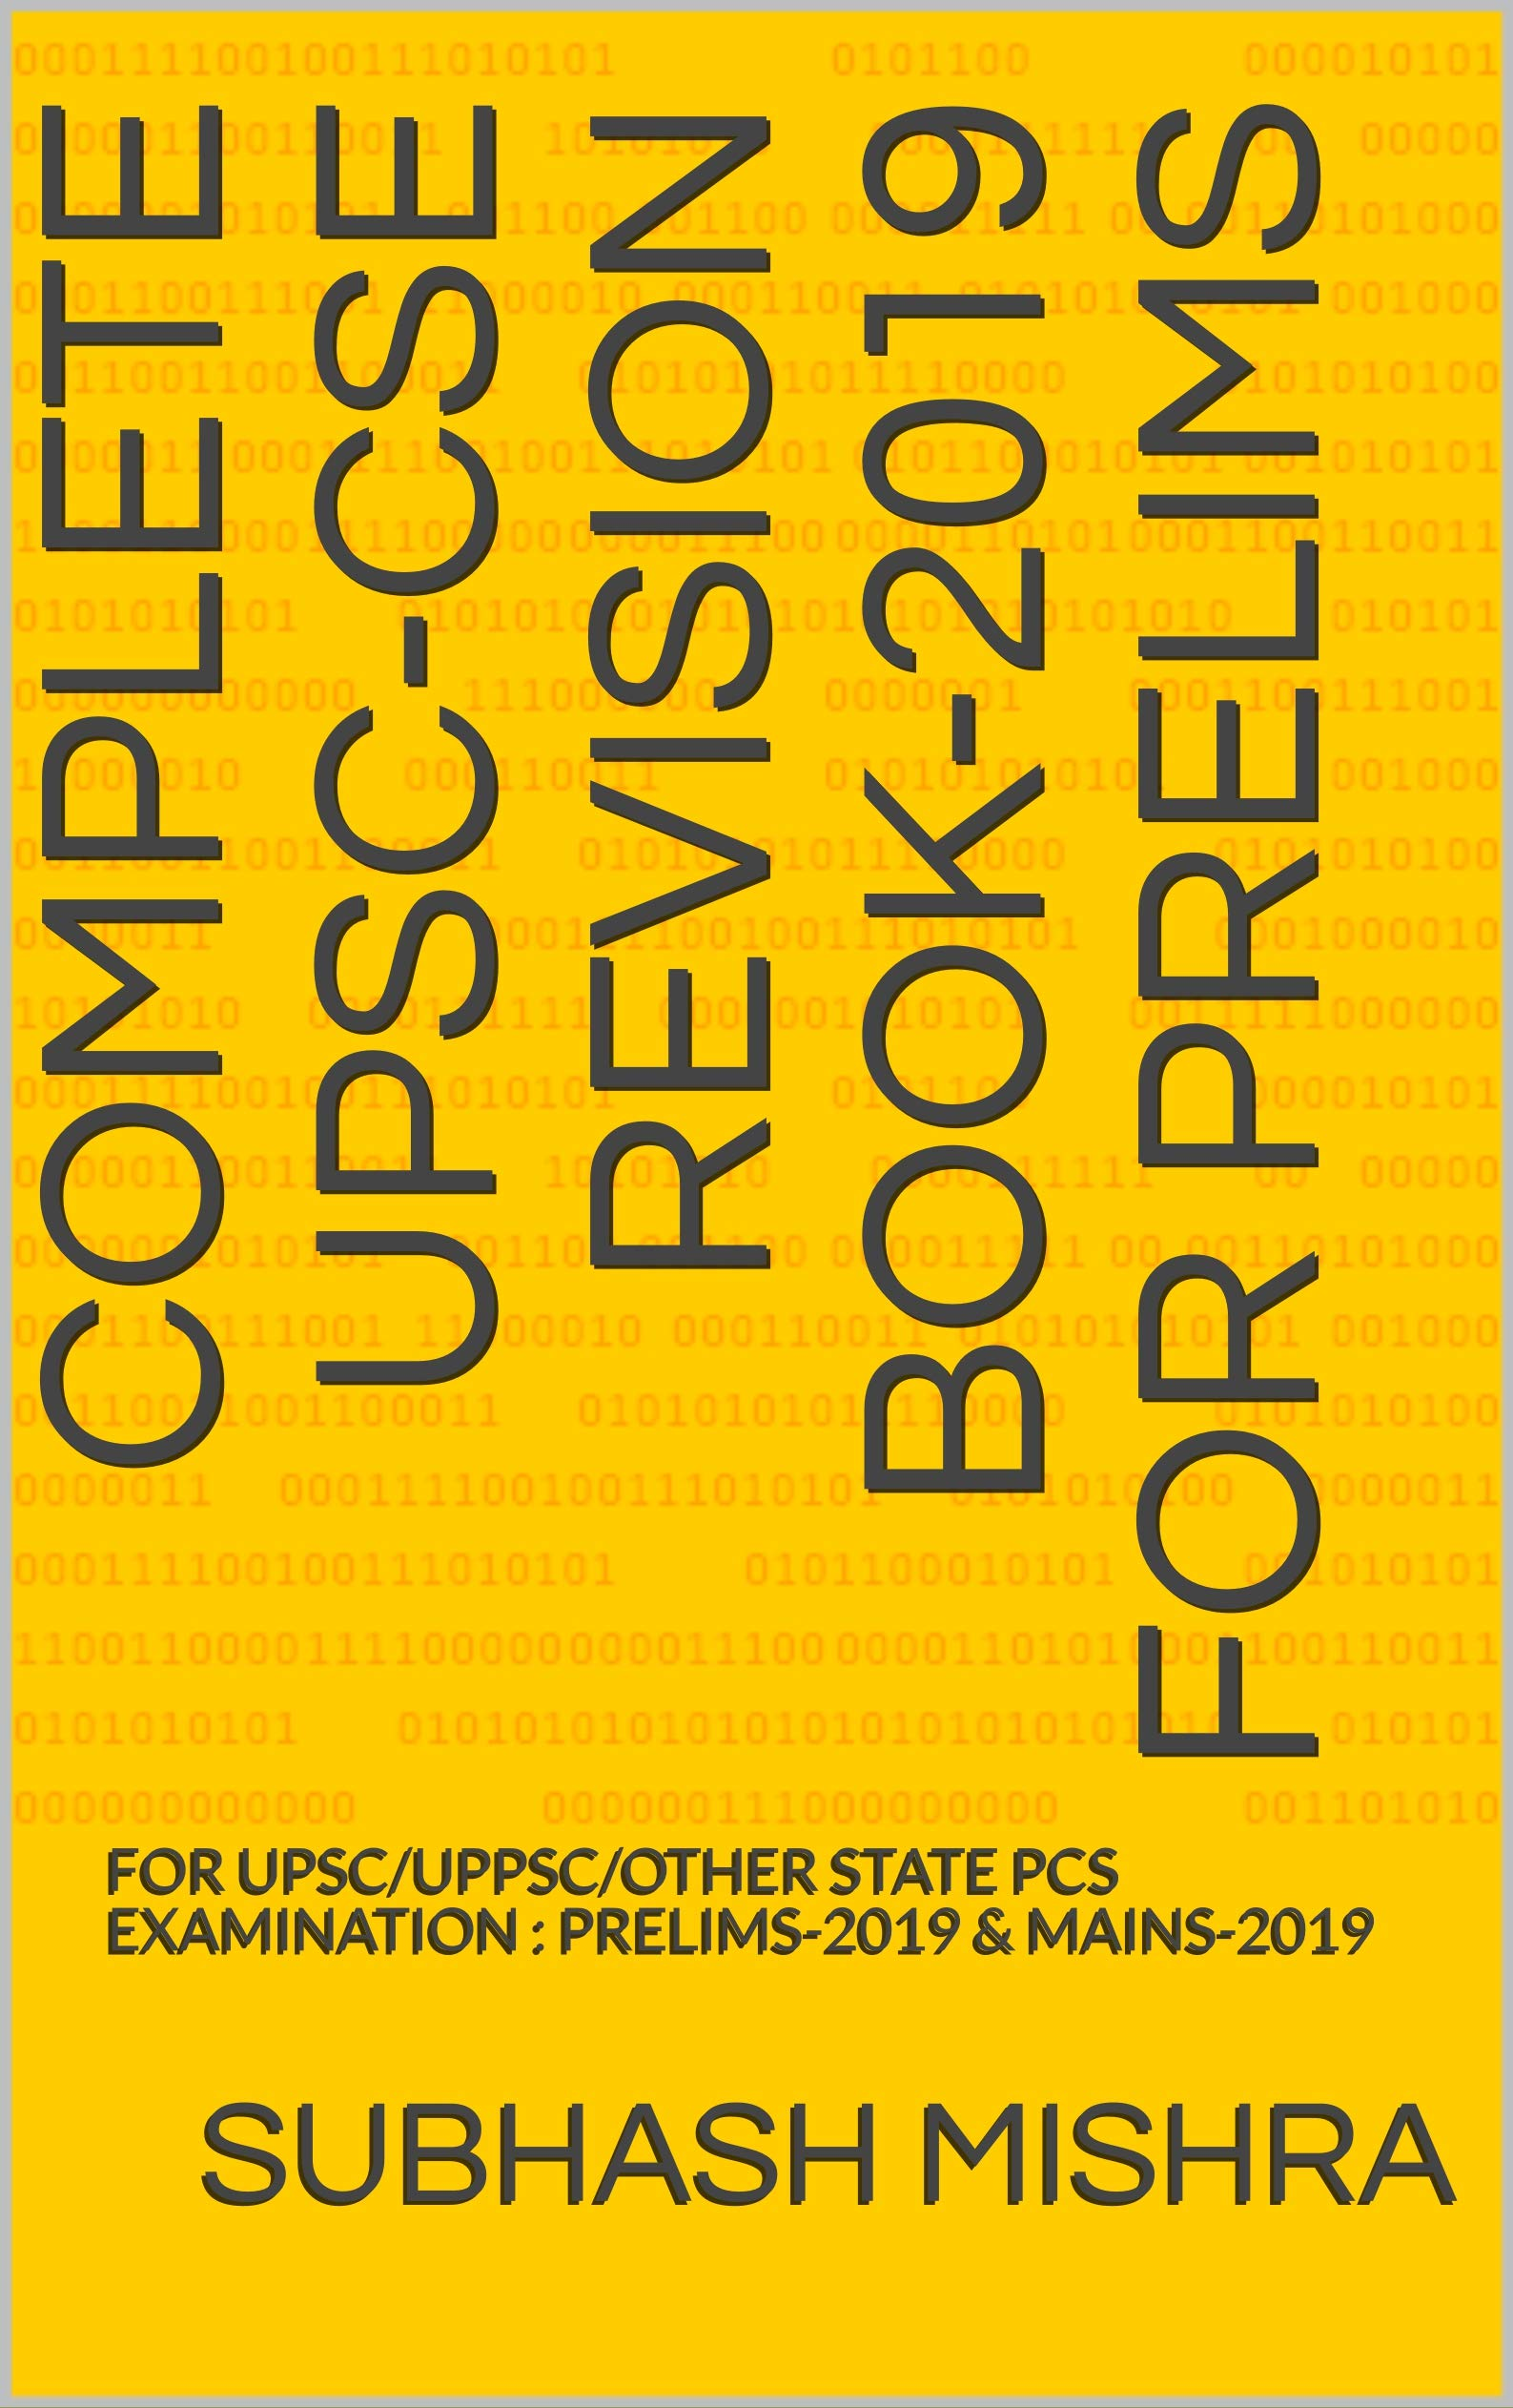 COMPLETE UPSC-CSE REVISION BOOK-2019 for Prelims: FOR UPSC/UPPSC/OTHER STATE PCS EXAMINATION : PRELIMS-2019 & MAINS-2019